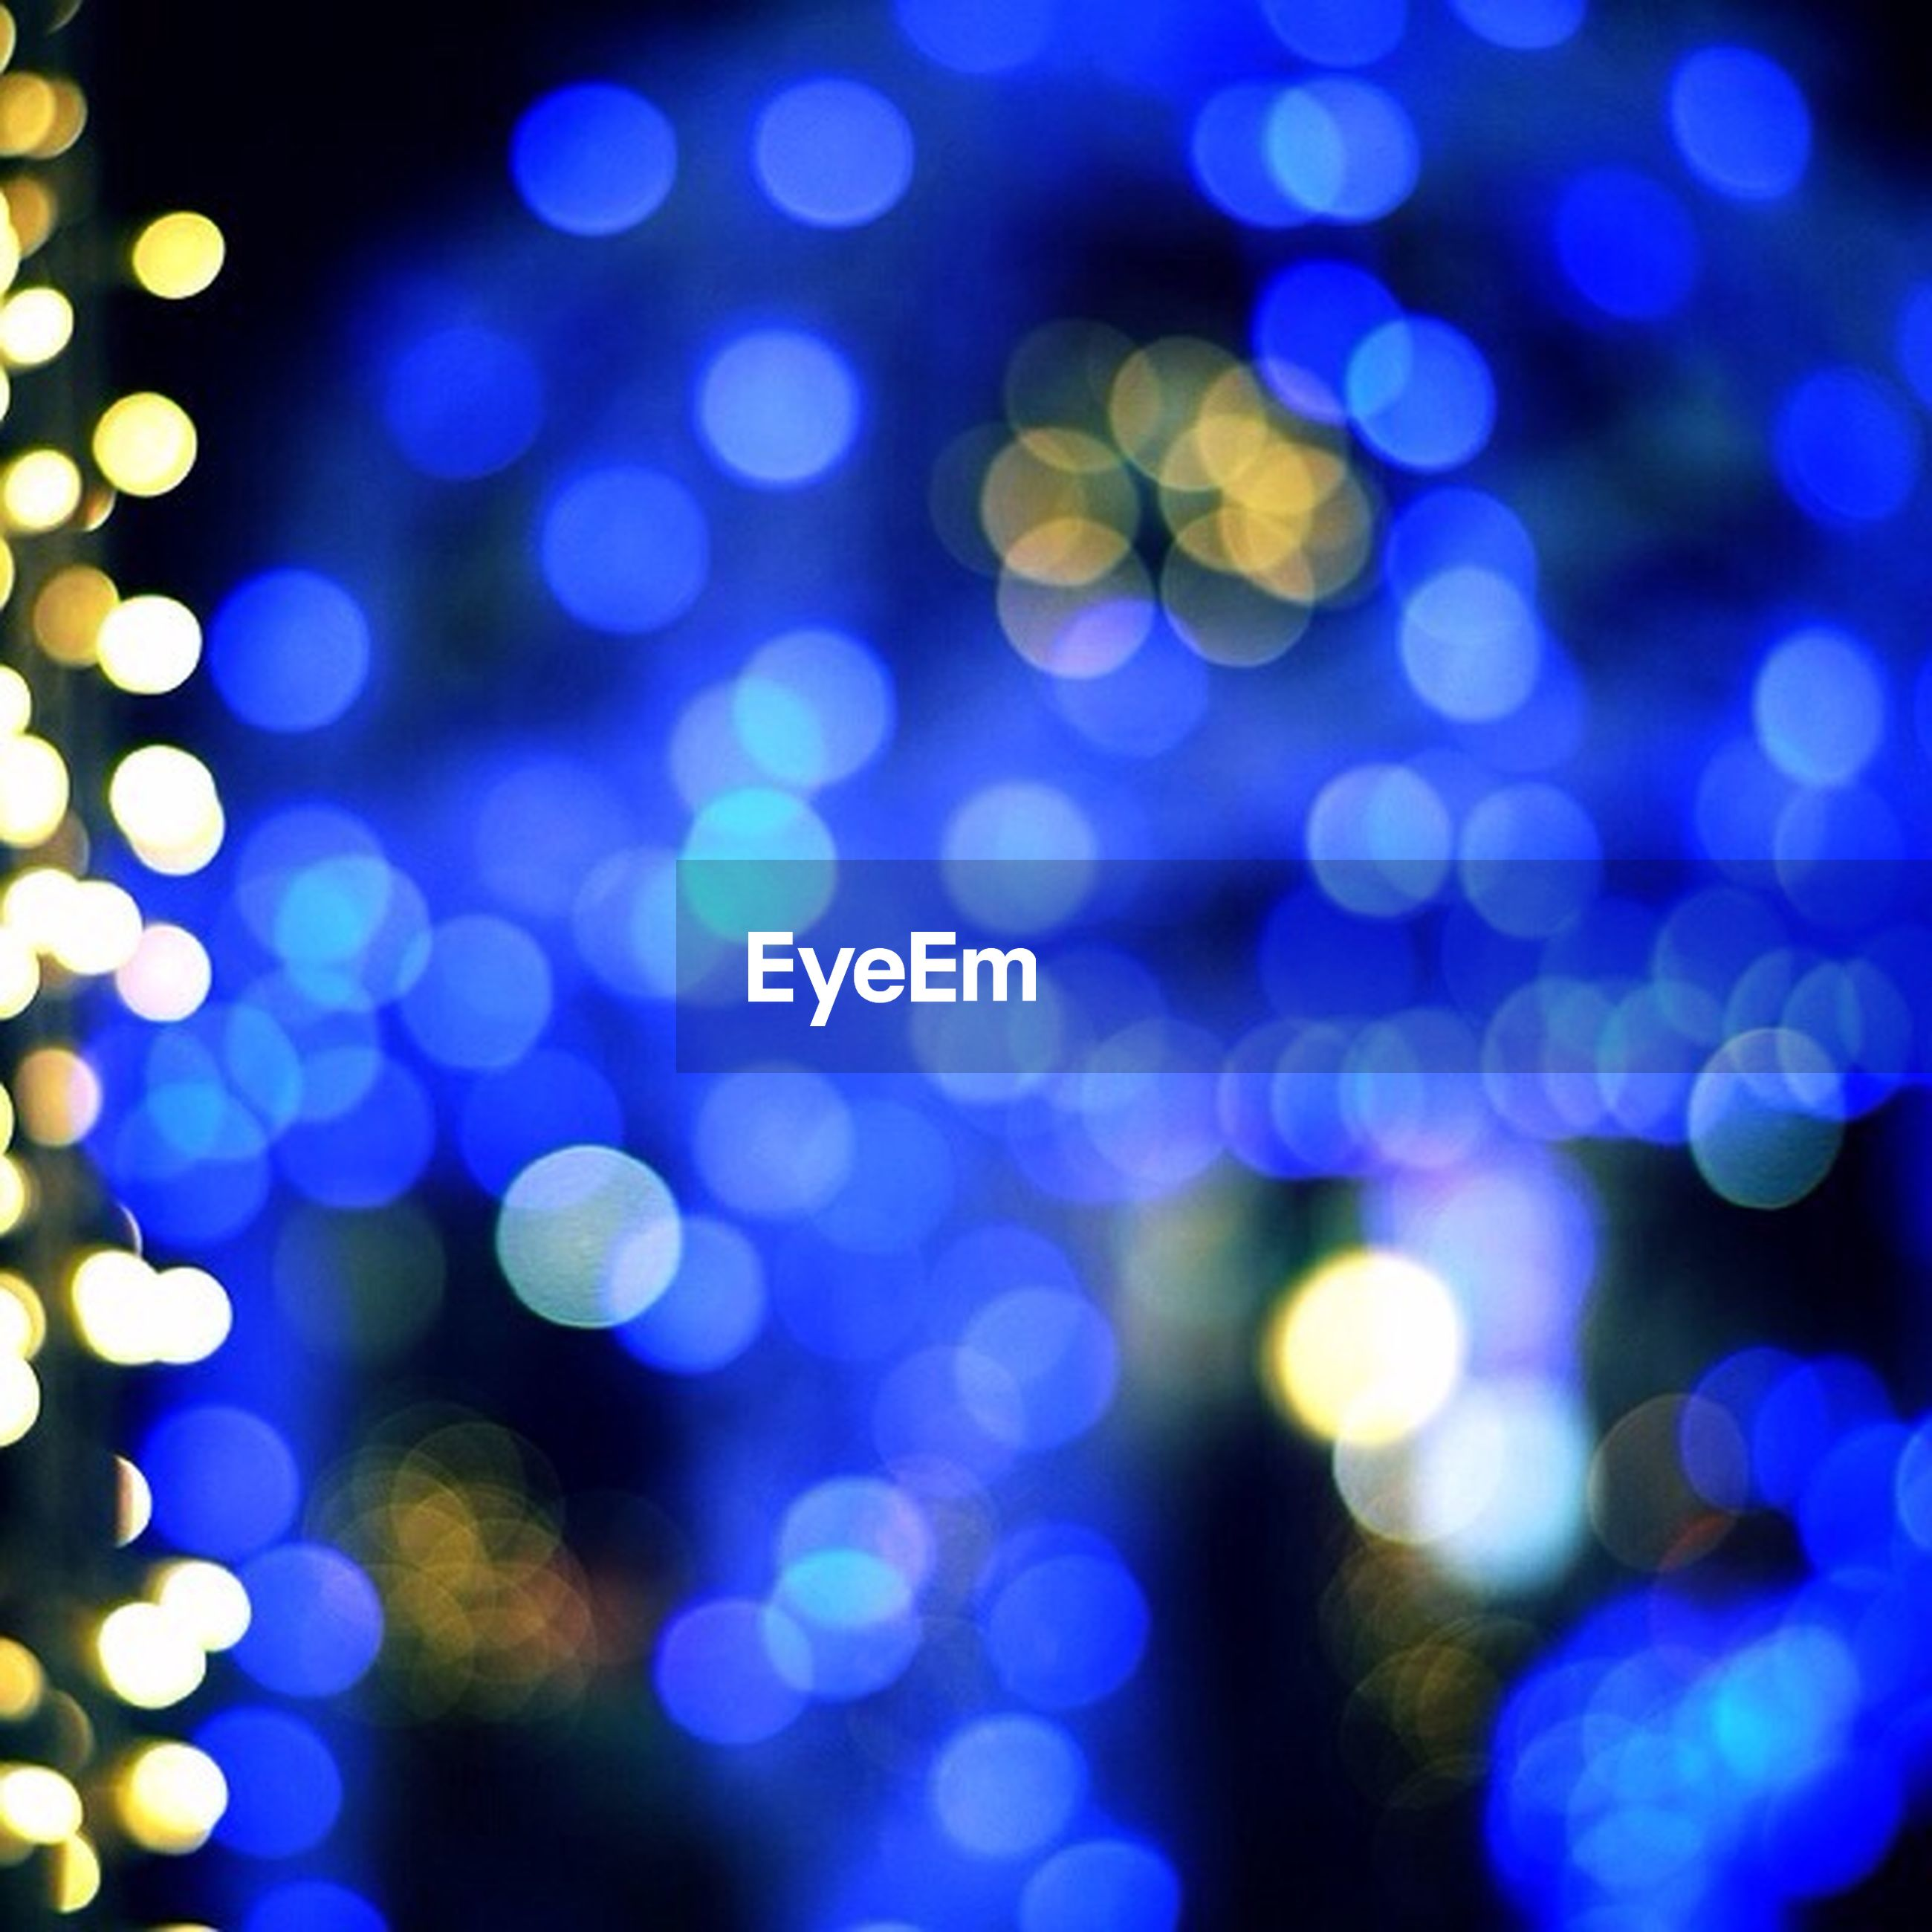 illuminated, multi colored, night, defocused, glowing, light - natural phenomenon, blue, lens flare, lighting equipment, colorful, celebration, abstract, no people, light, outdoors, backgrounds, selective focus, low angle view, close-up, light effect